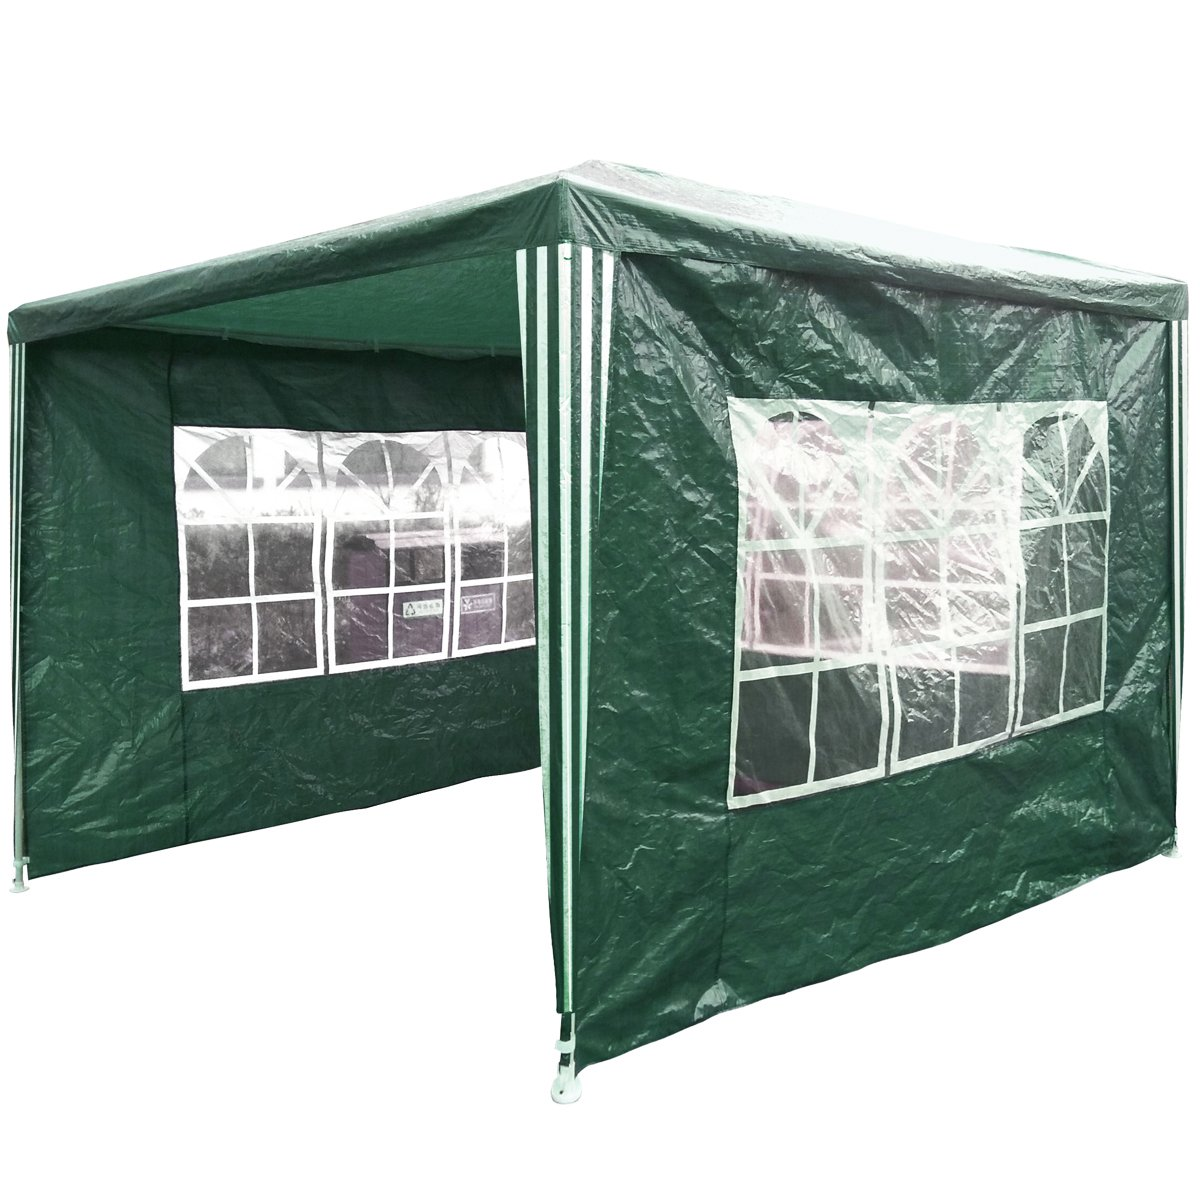 Charles Bentley 3M X 3M Gazebo Awning Wedding/Party Tent - Green Showerproof PE Charles Bentley Garden